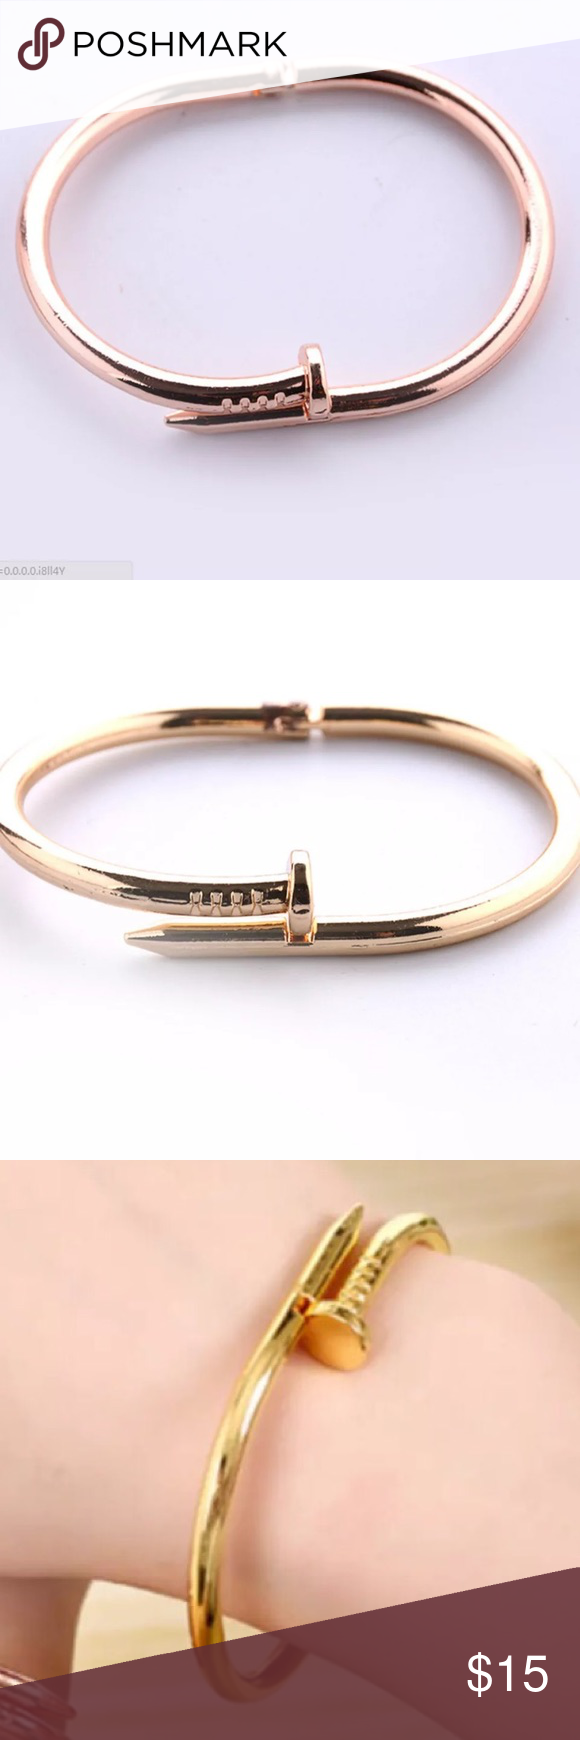 🆕 (O16) Gold Screw Nail Bracelet Gold screw nail bracelet. Bracelet made of zinc alloy. It's very strong and heavy duty. Has a locking mechanism on it so you don't lose it and a spring to open to fit wrists up to size 8. Jewelry Bracelets